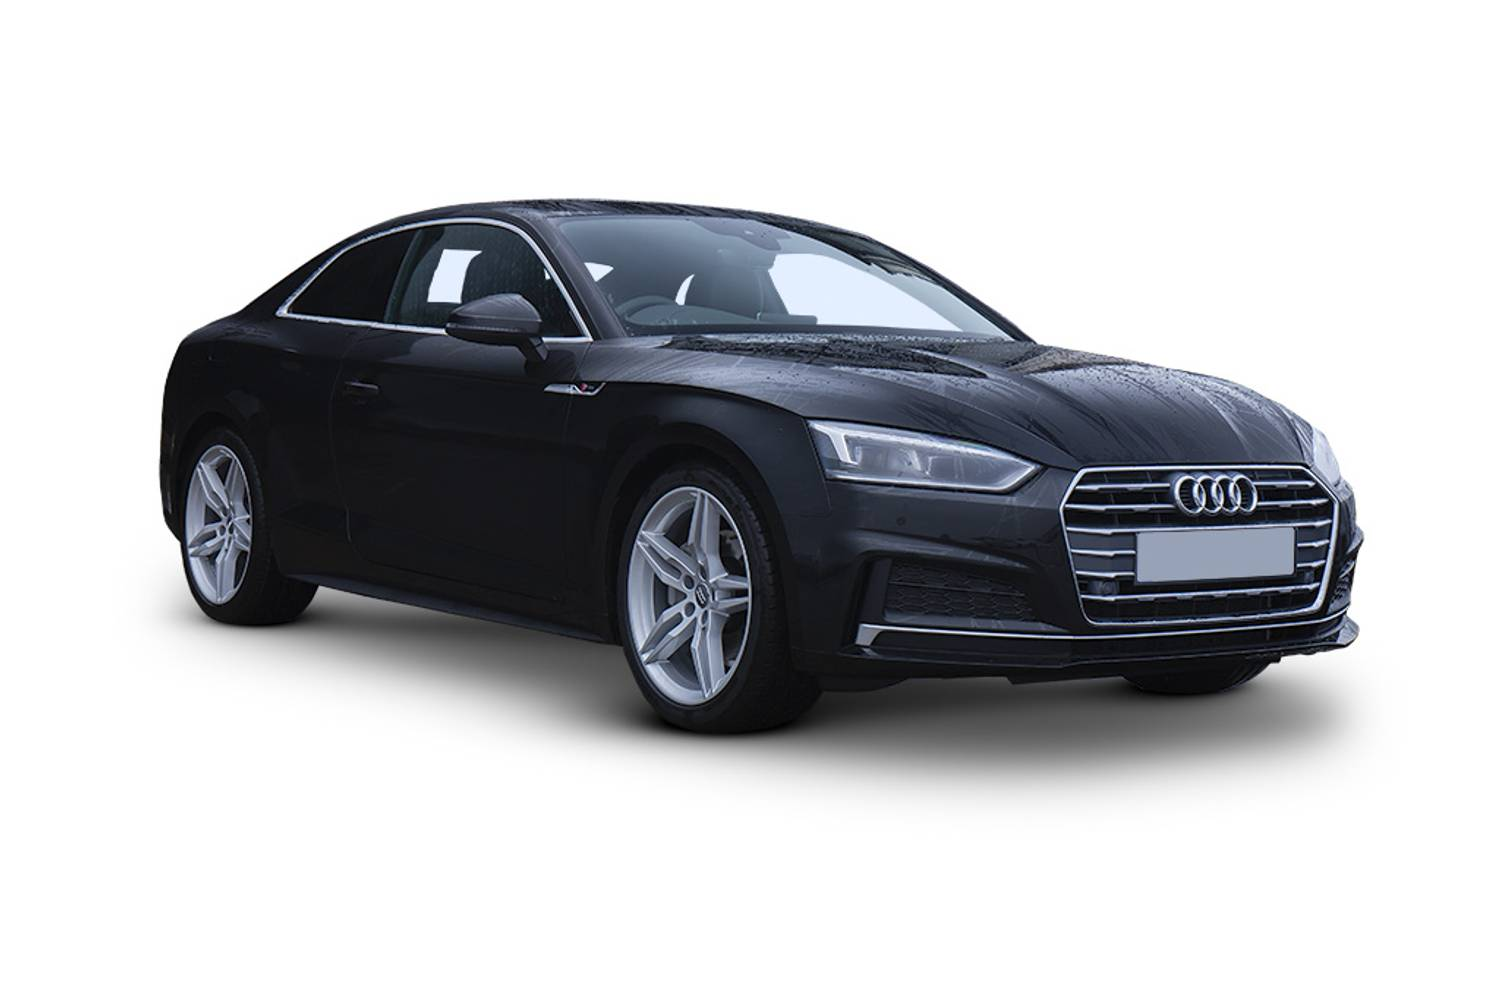 New Audi A Coupe TFSI Sport Door S Tronic For Sale - 2 door audi